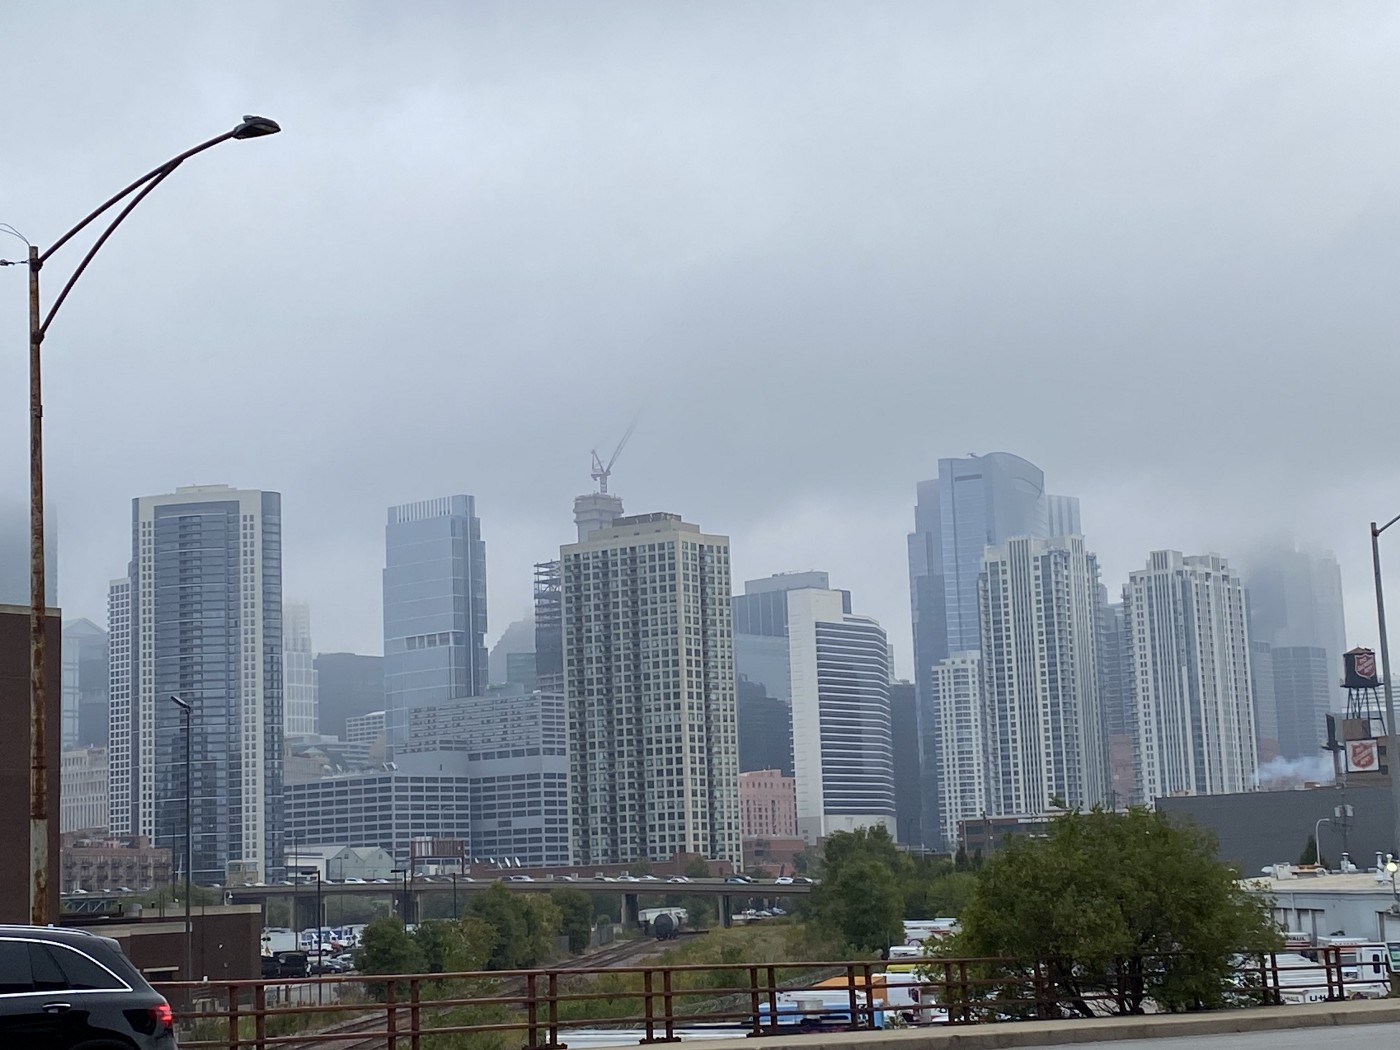 Chicago buildings and street light on a gray day